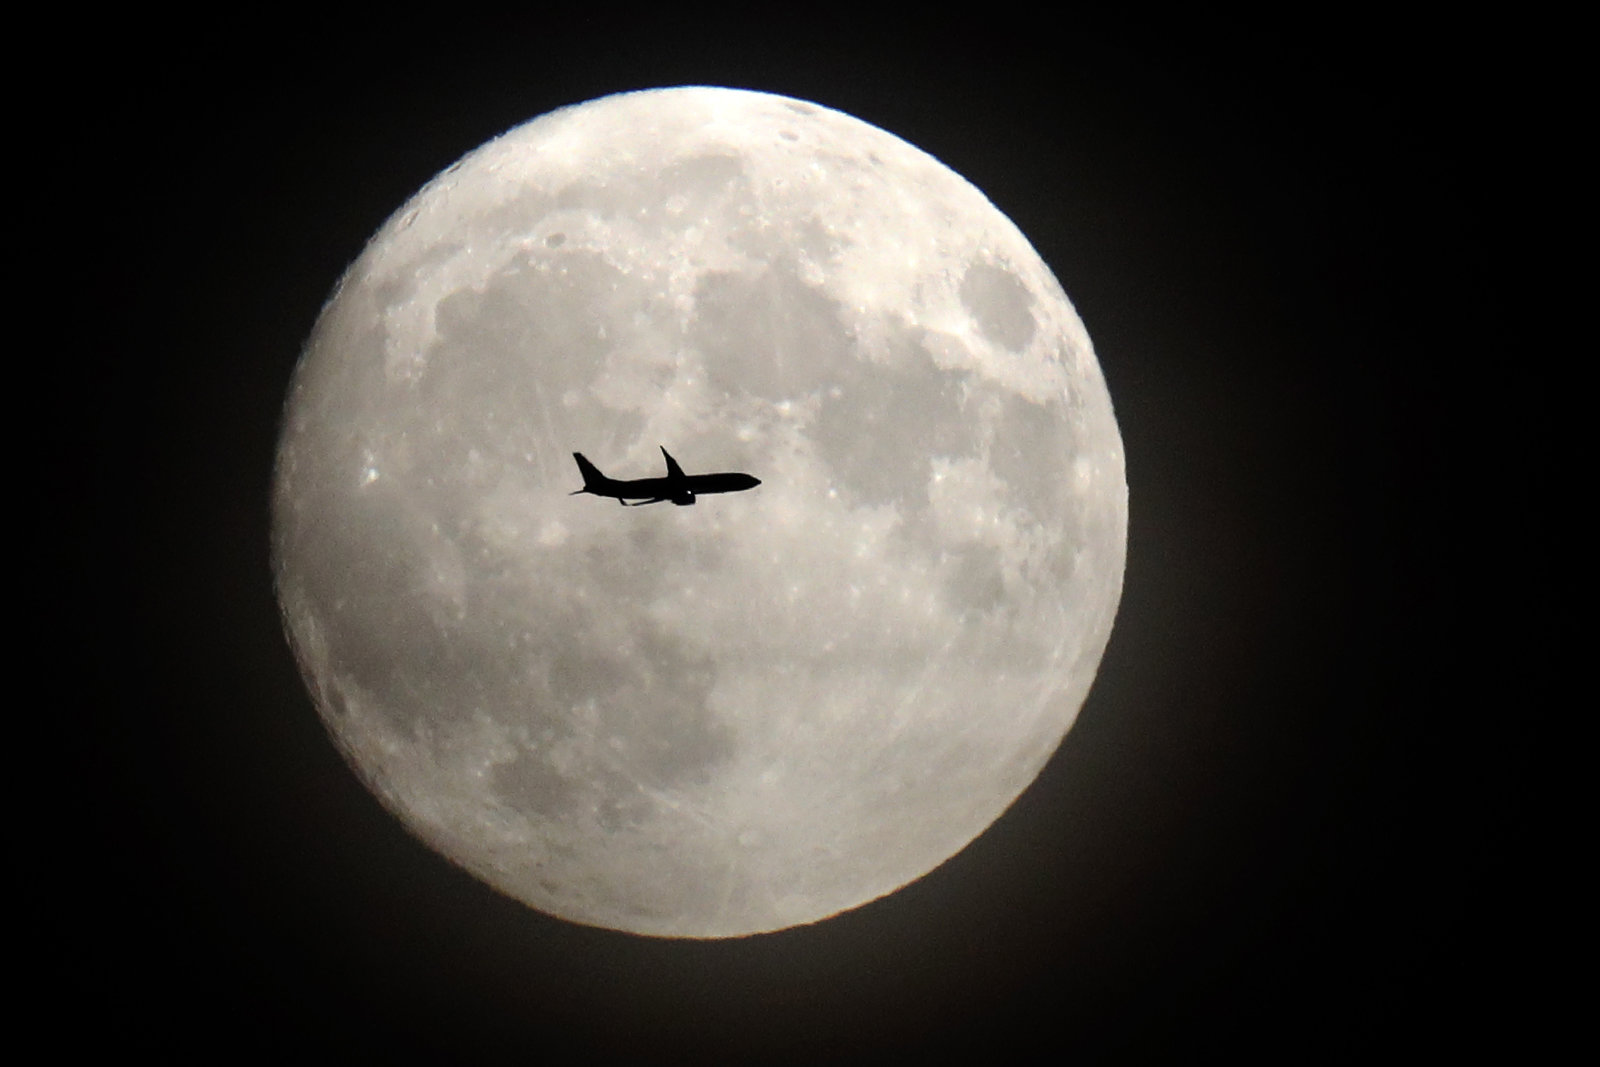 A supermoon with a plane flying in front of it